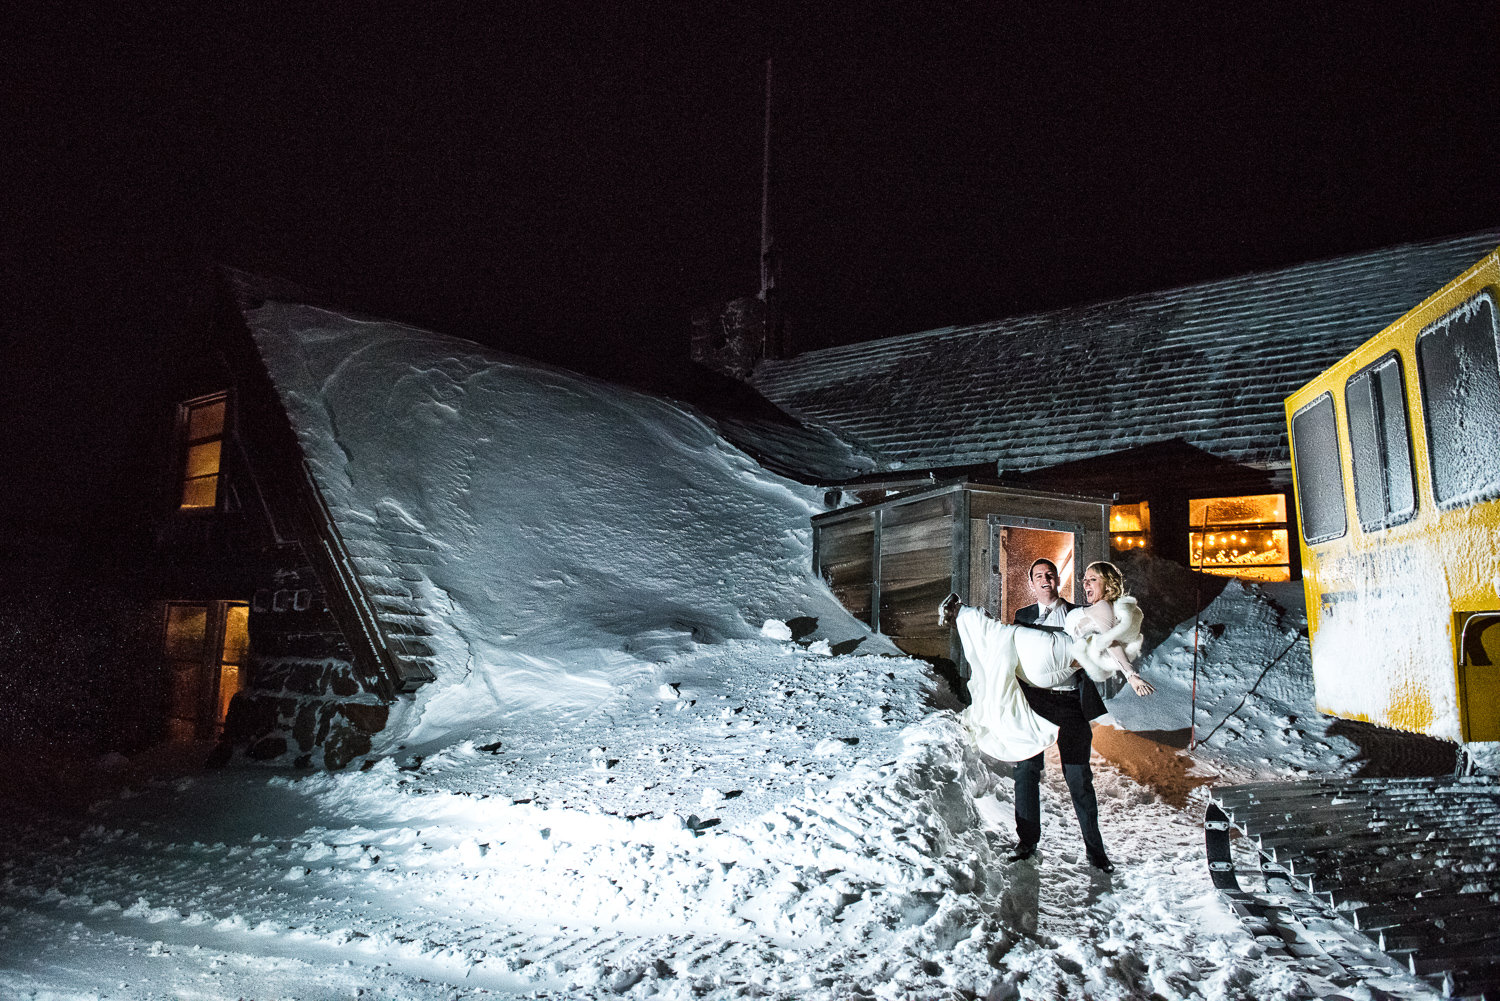 Nighttime at the Silcox Hut, Timberline, Mt. Hood, OR